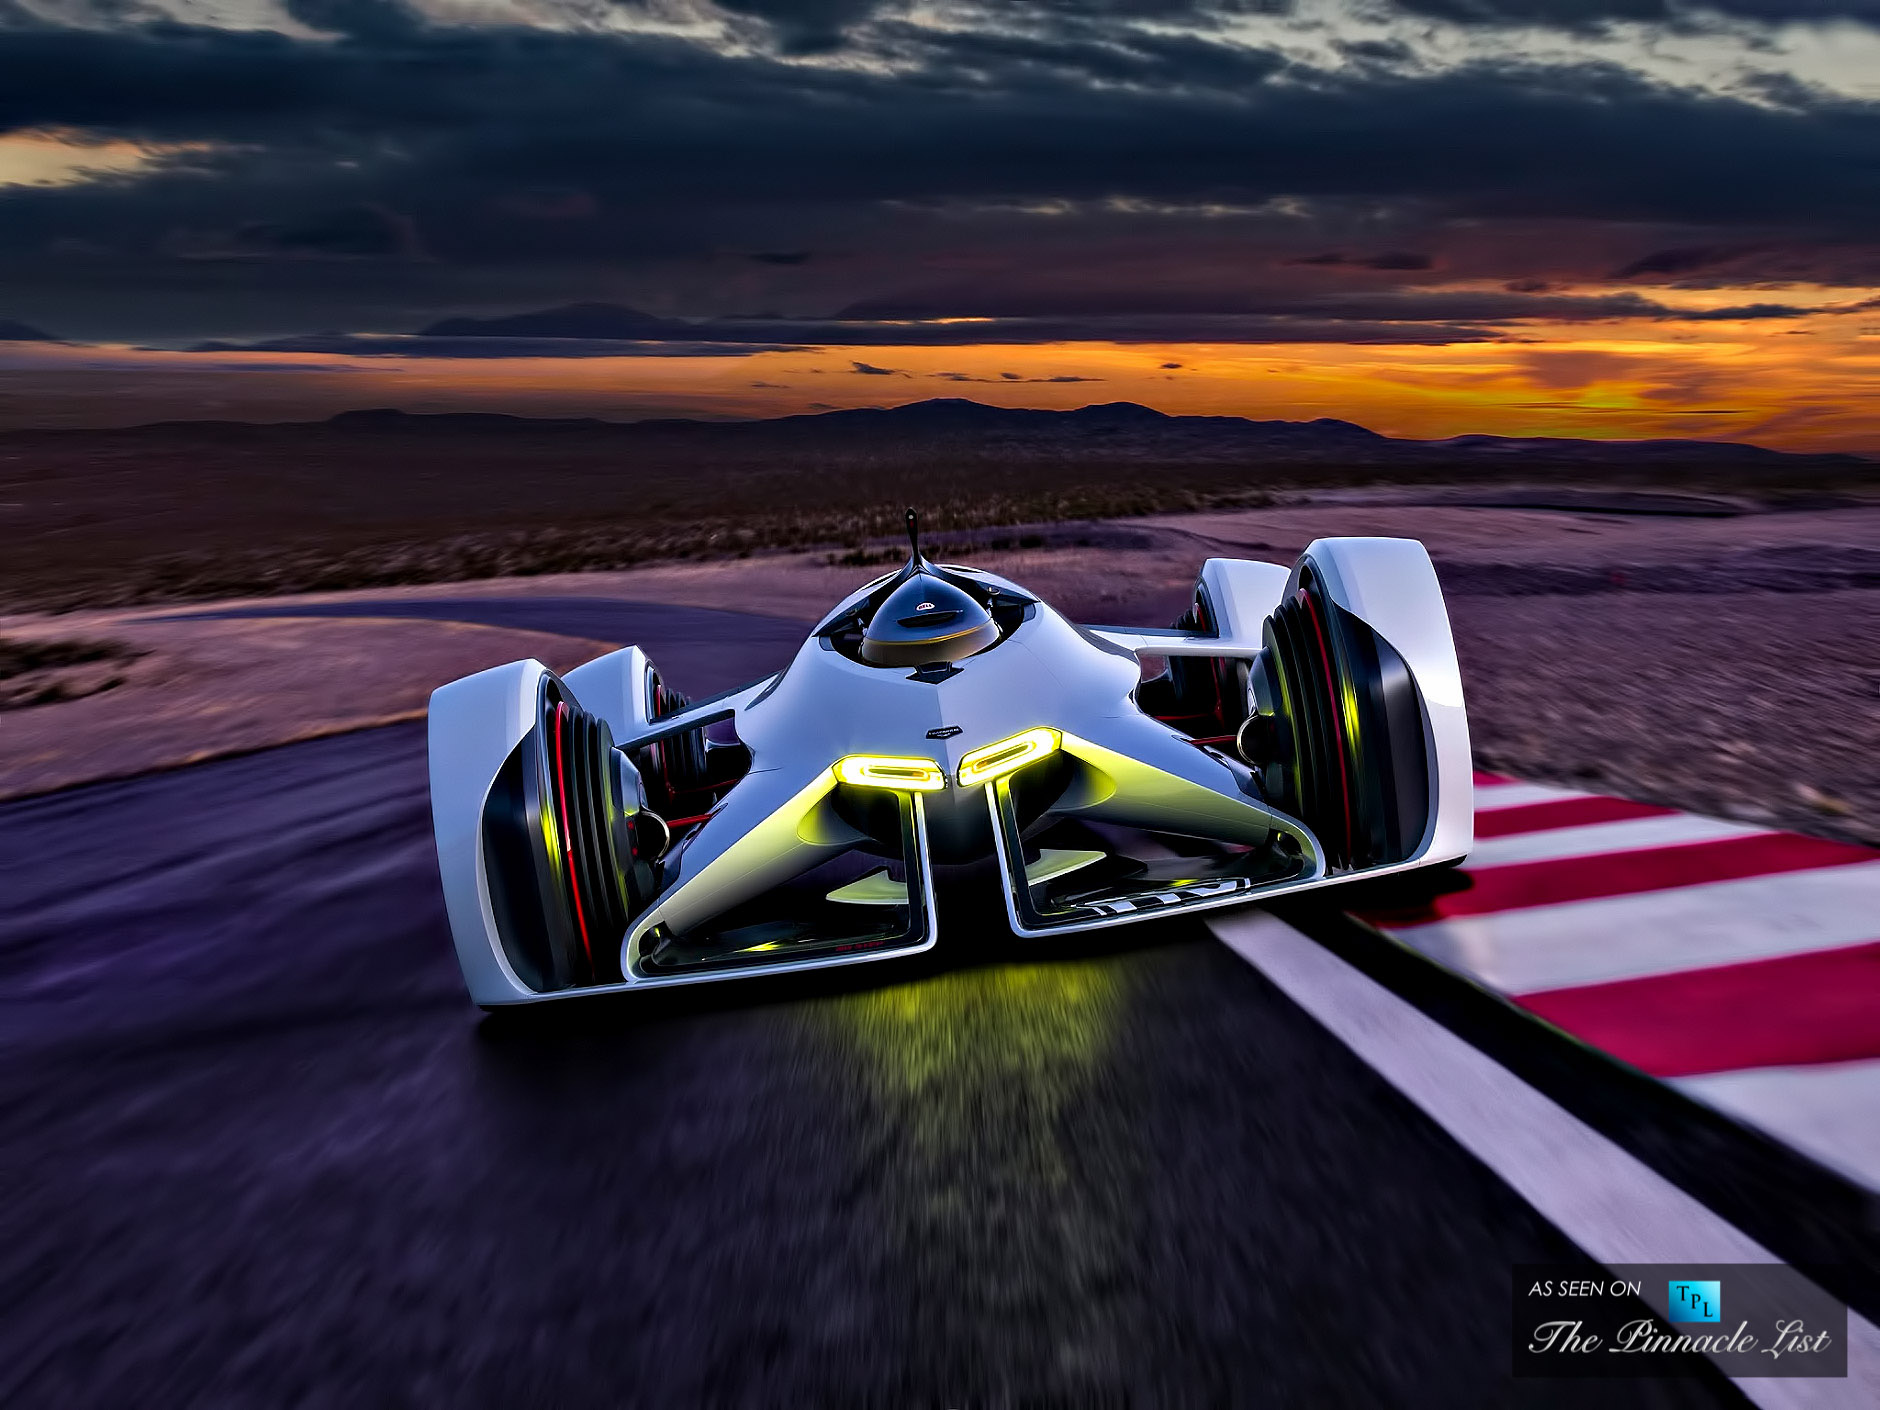 The Chevrolet Chaparral 2X Vision Gran Turismo Defies Science Fiction by Coming to Life